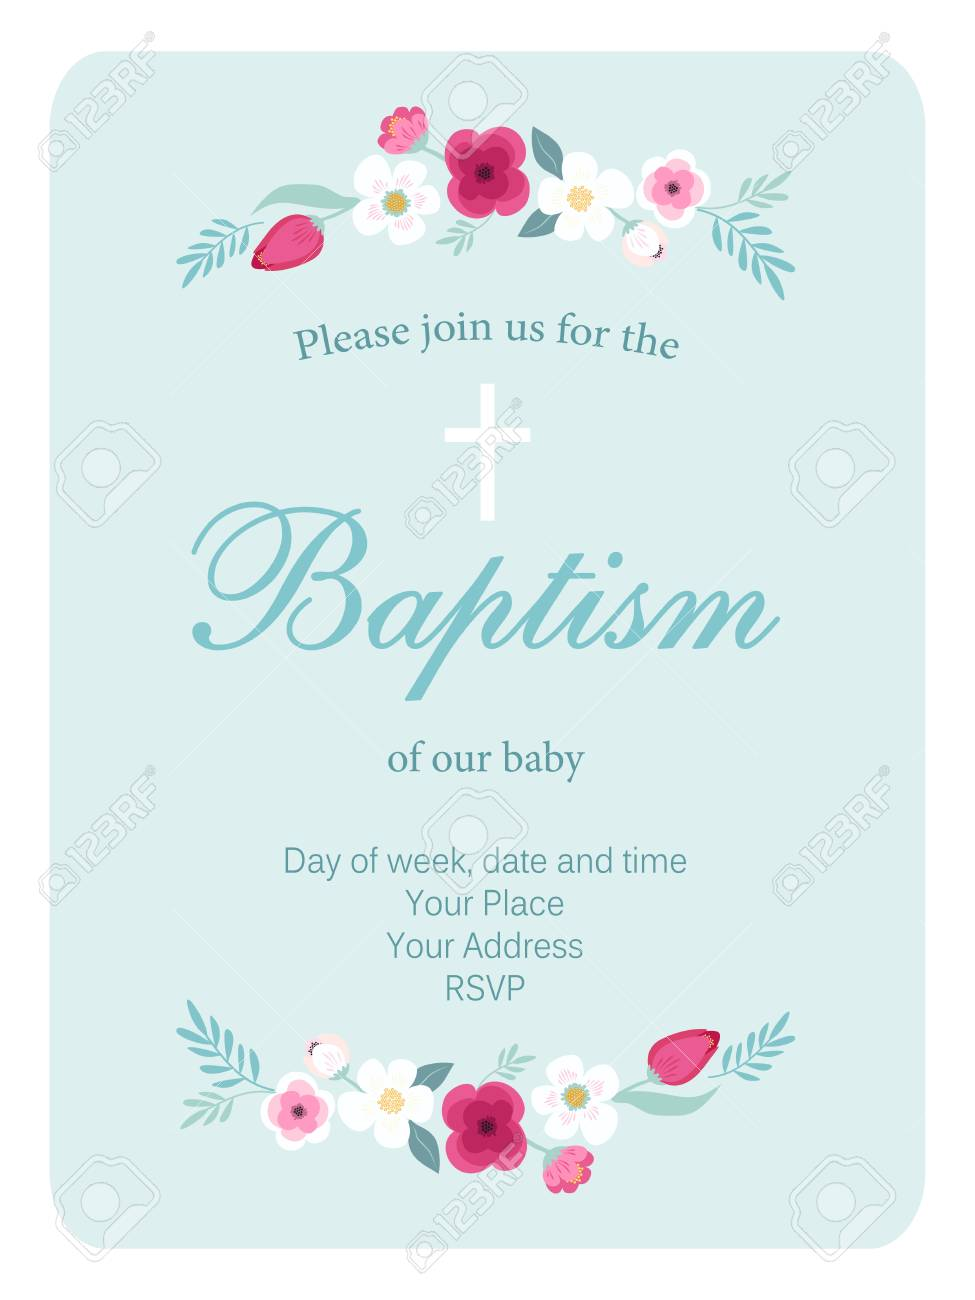 cute vintage baptism invitation card with hand drawn flowers royalty